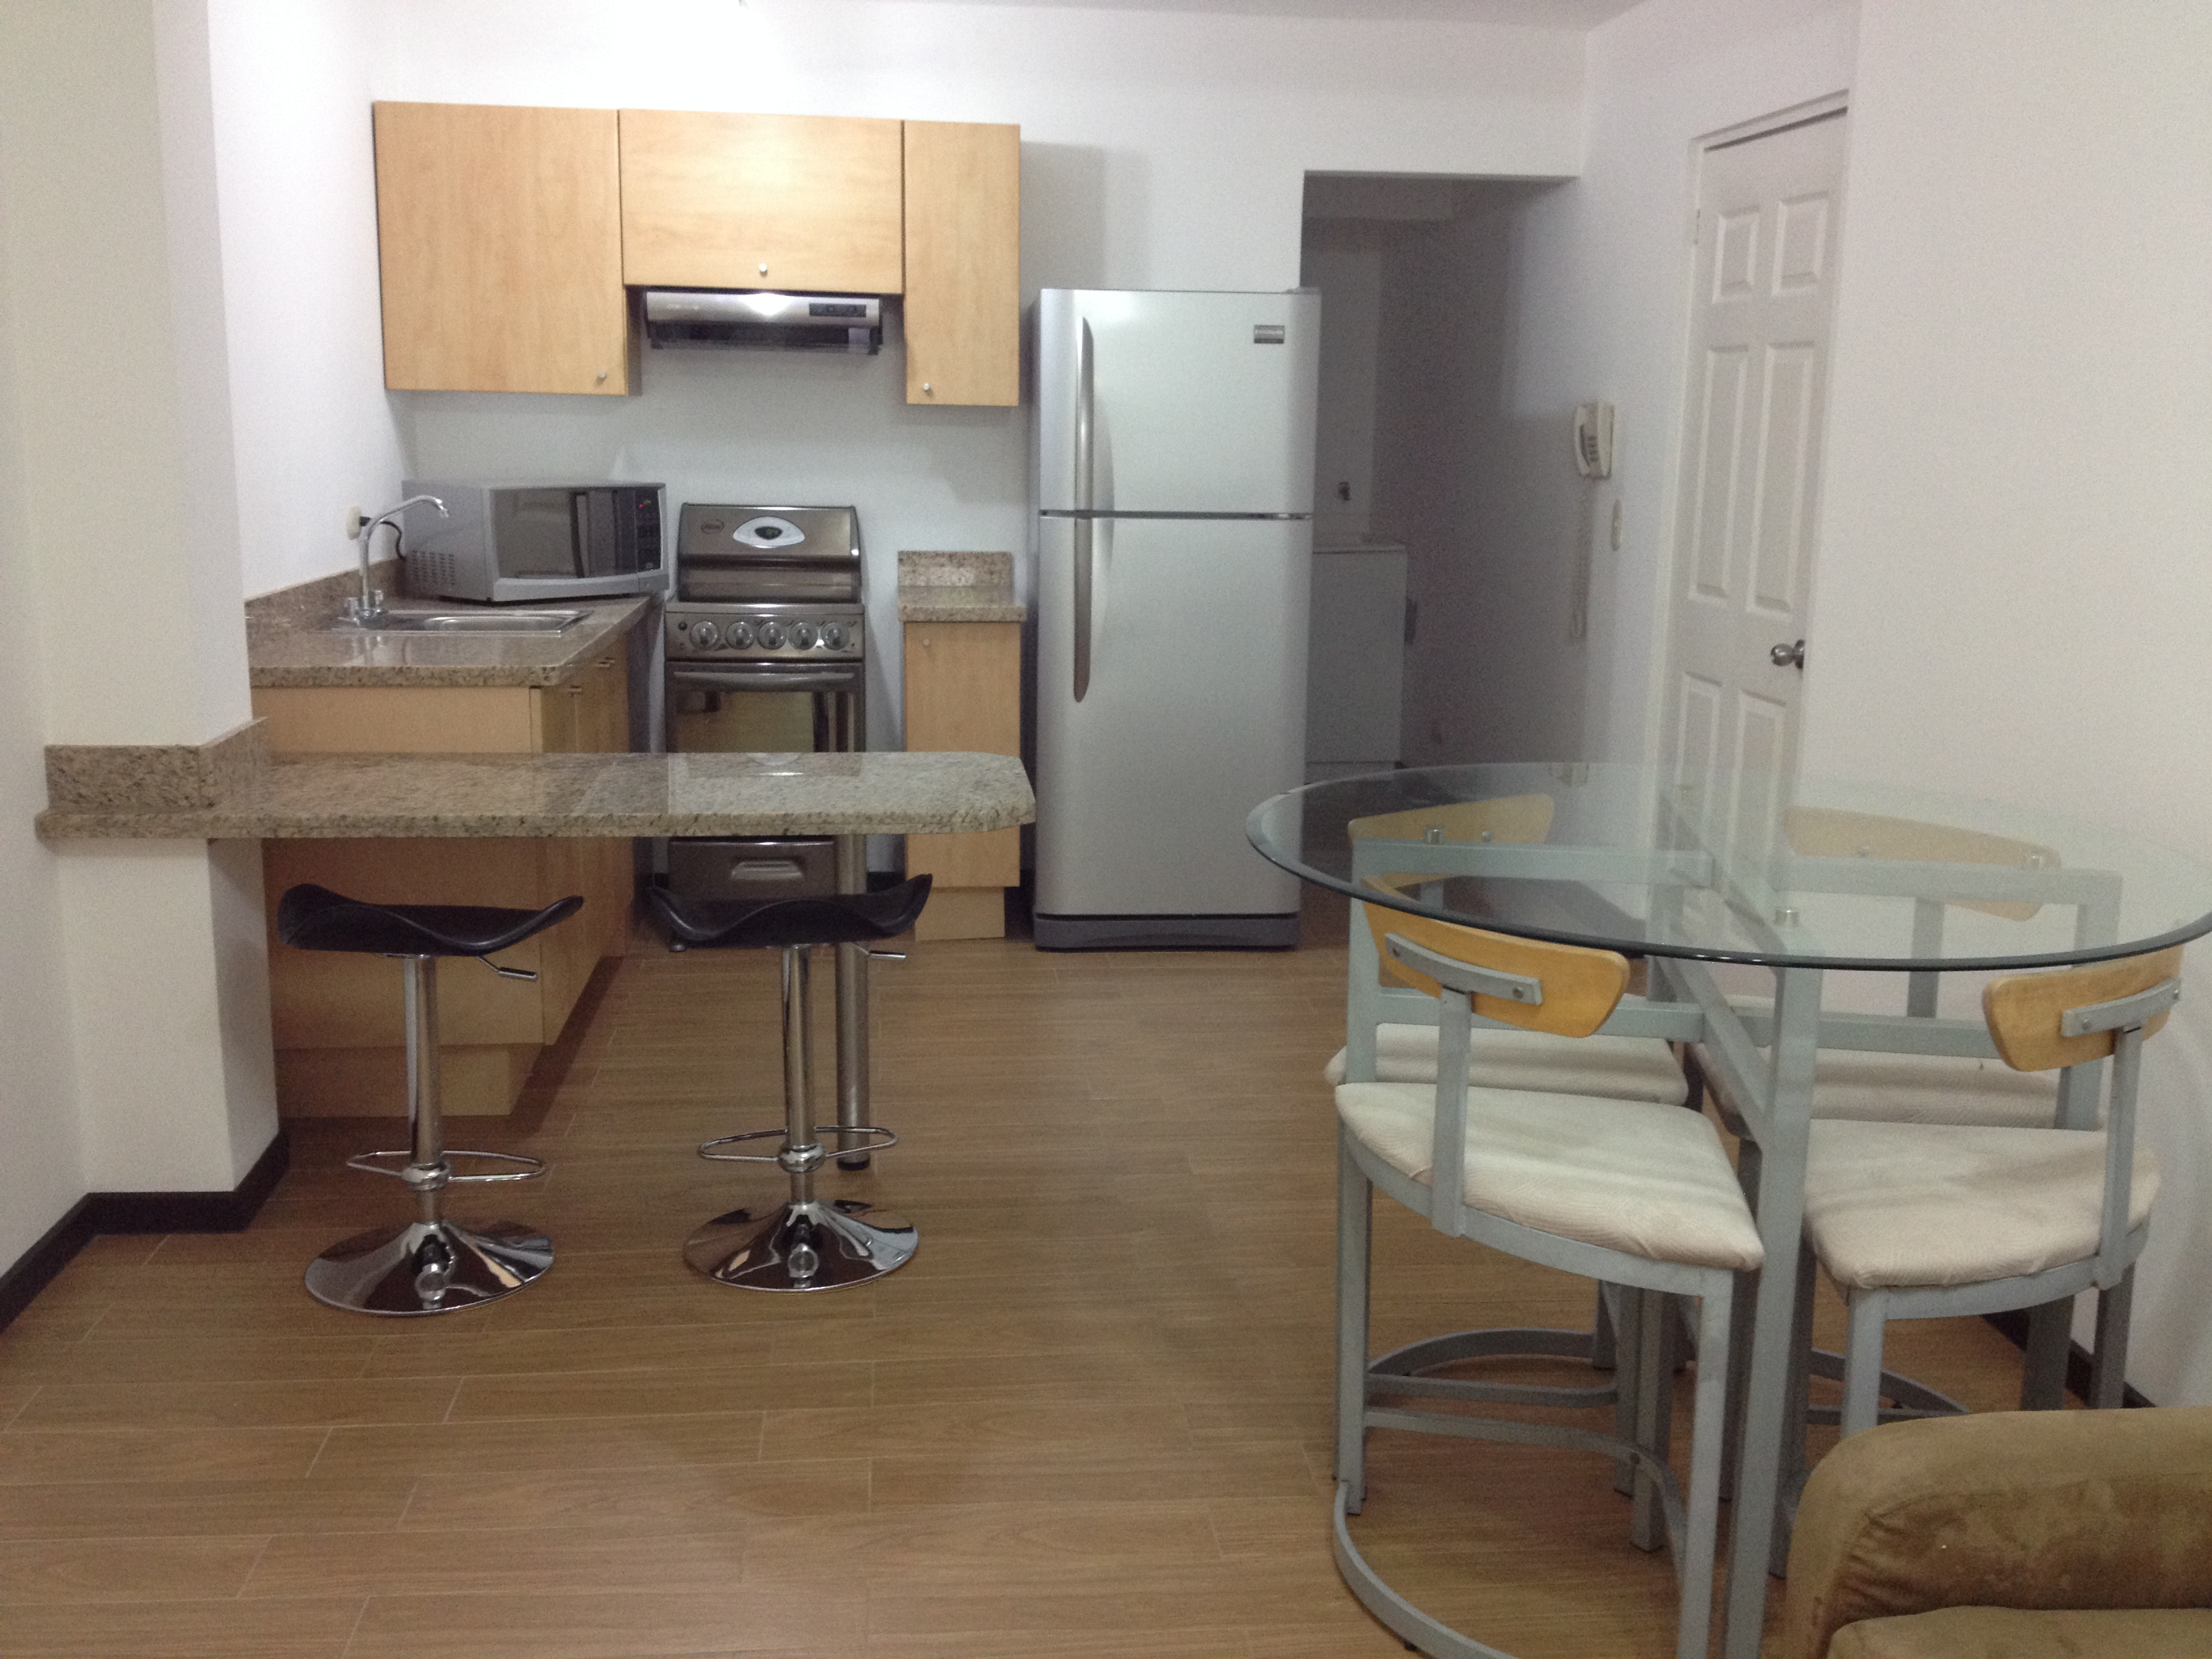 Modern, furnished, 1 bedroom apartment in Escazu, Trejos Montealegre